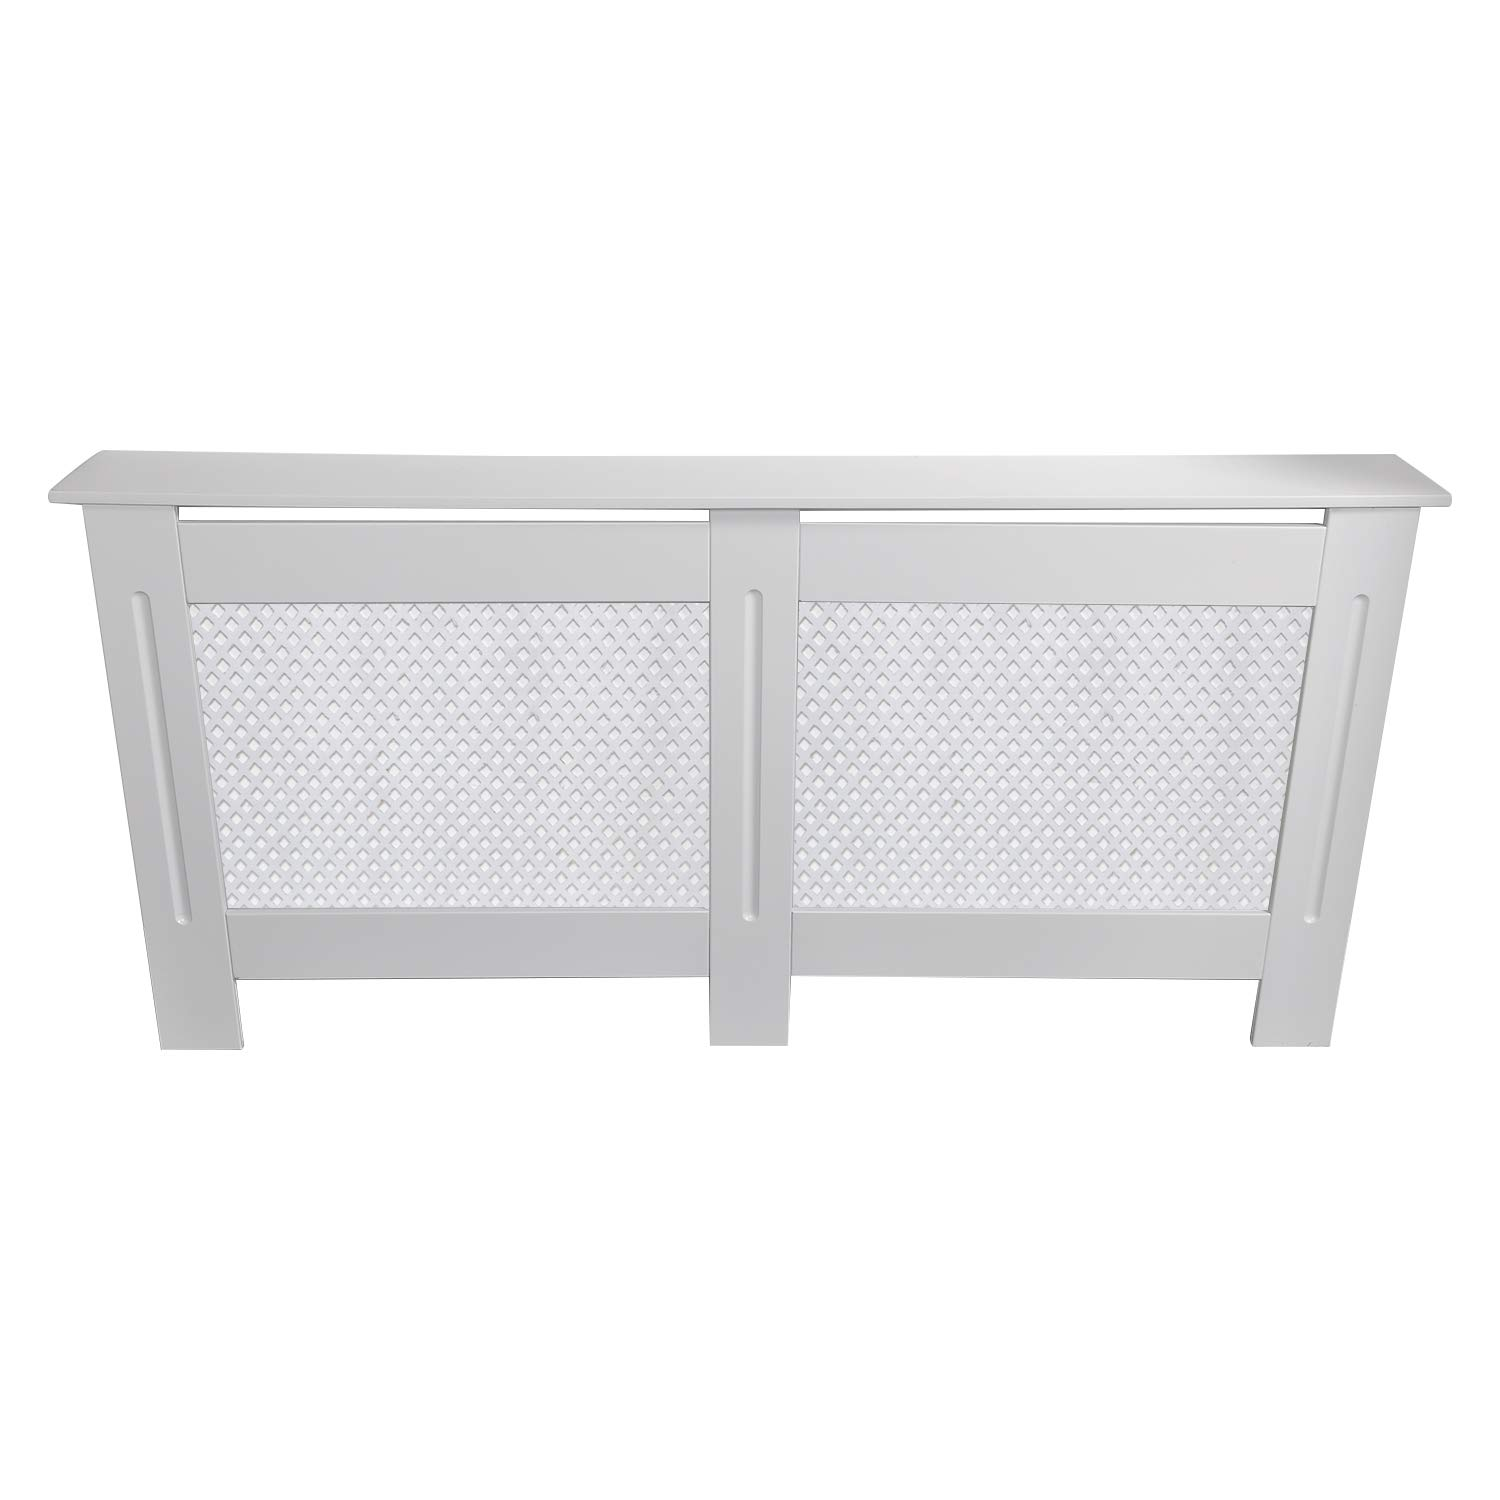 BPS Radiator Cover White Traditional Painted MDF Cabinet, Diamond Grill Style - Large 1520x815x190mm